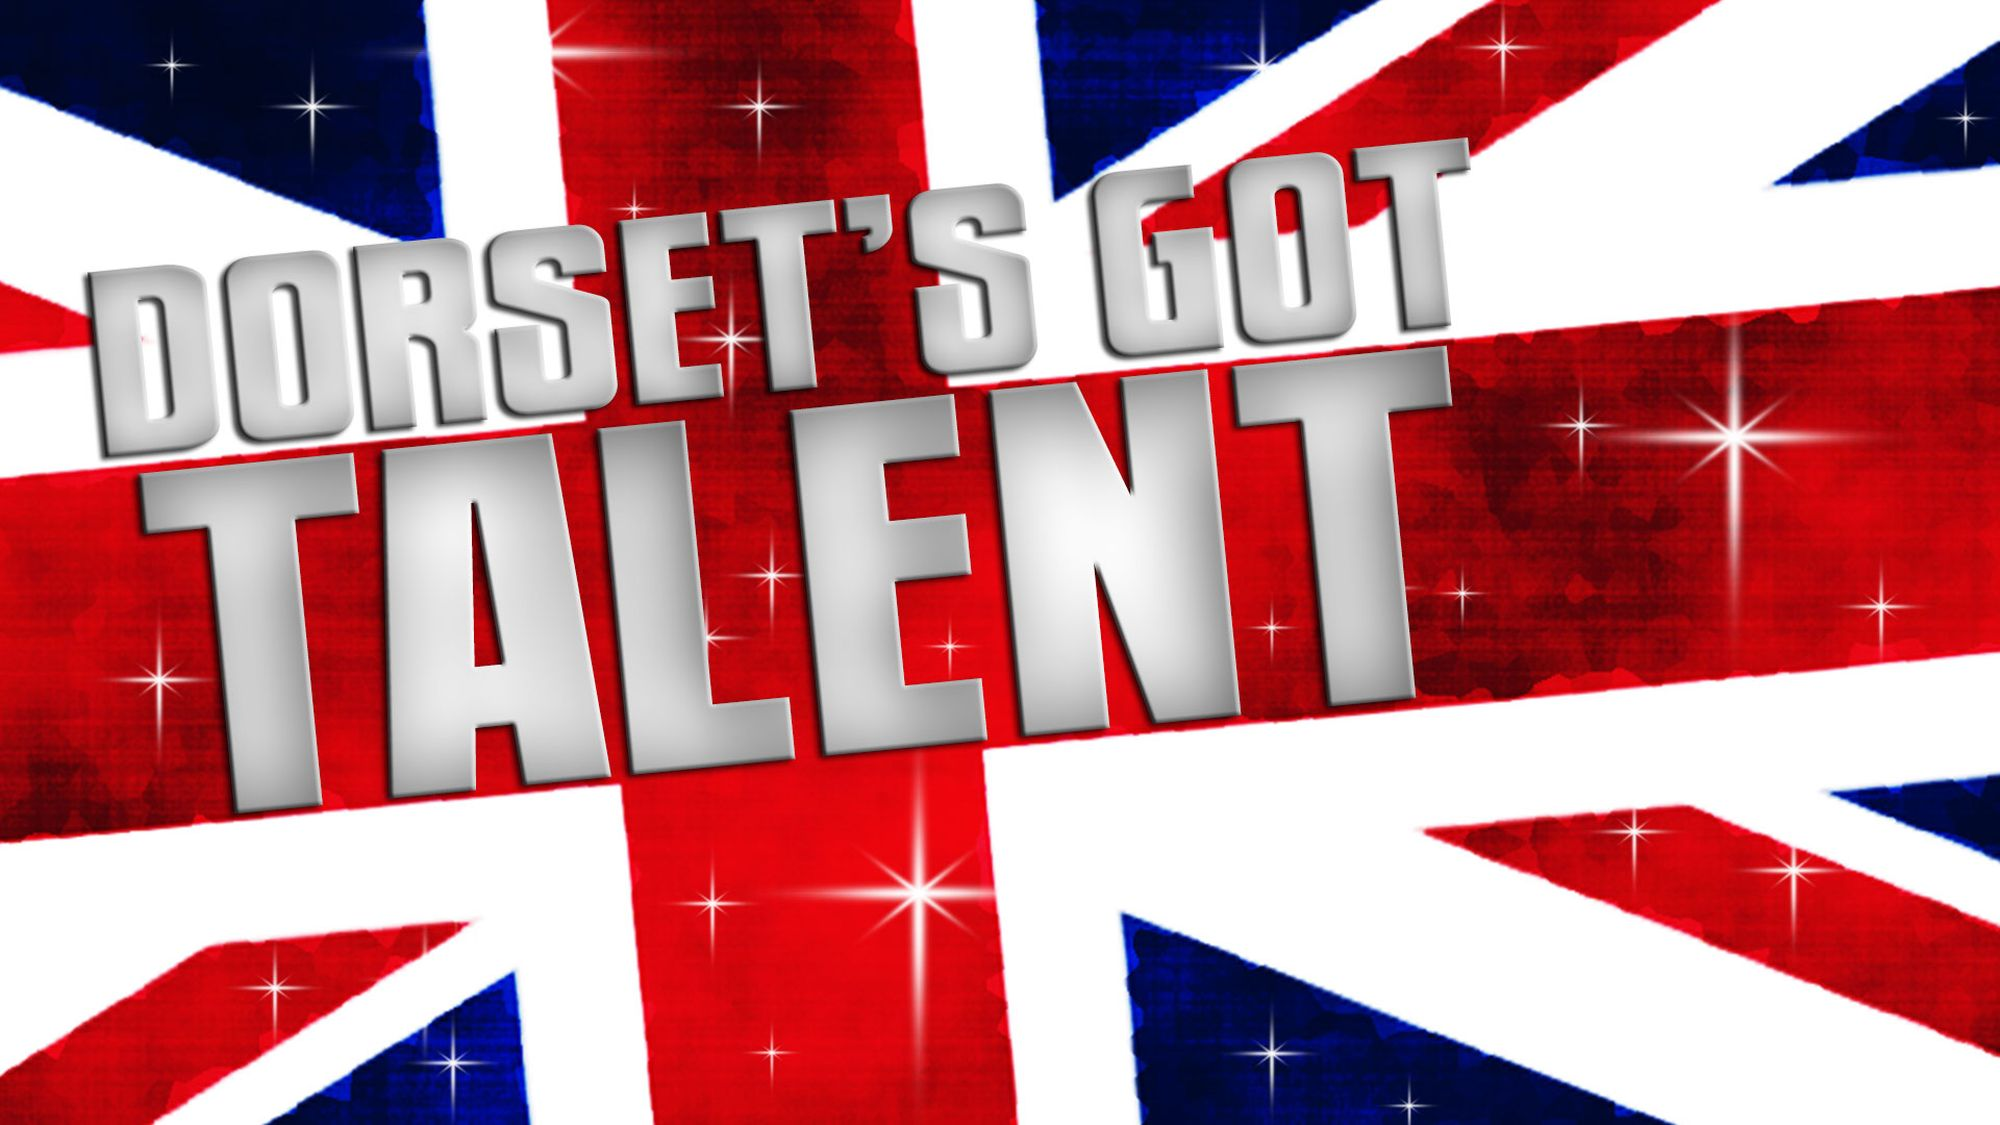 Dorset's Got Talent competition launched